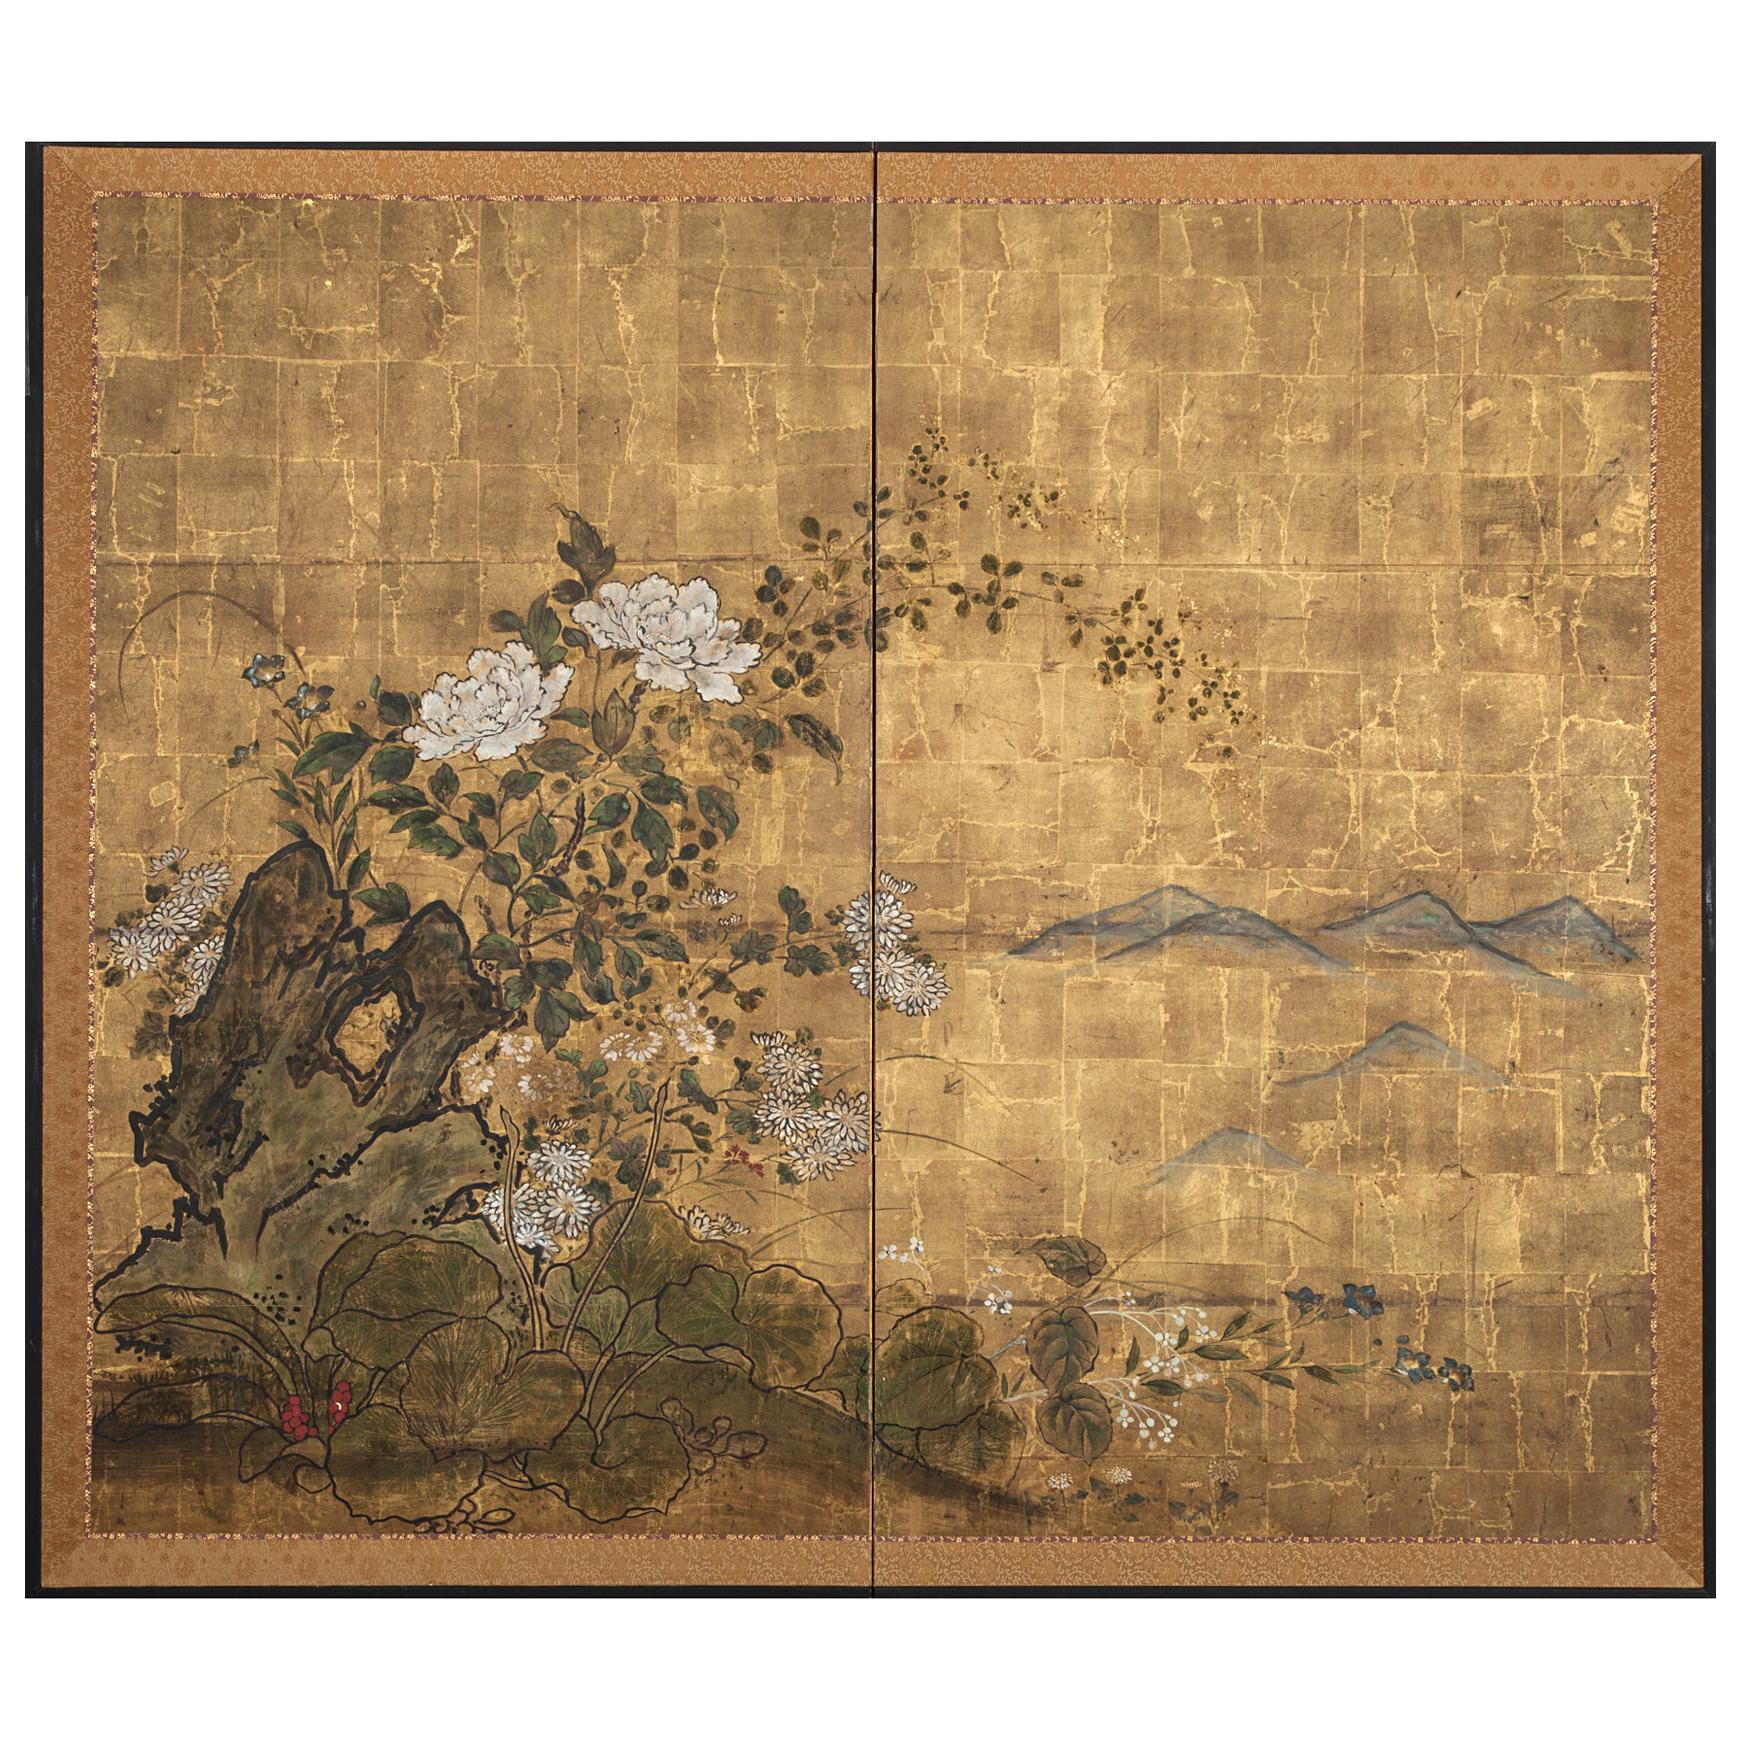 Japanese Two-Panel Screen, Floral Garden on Gold